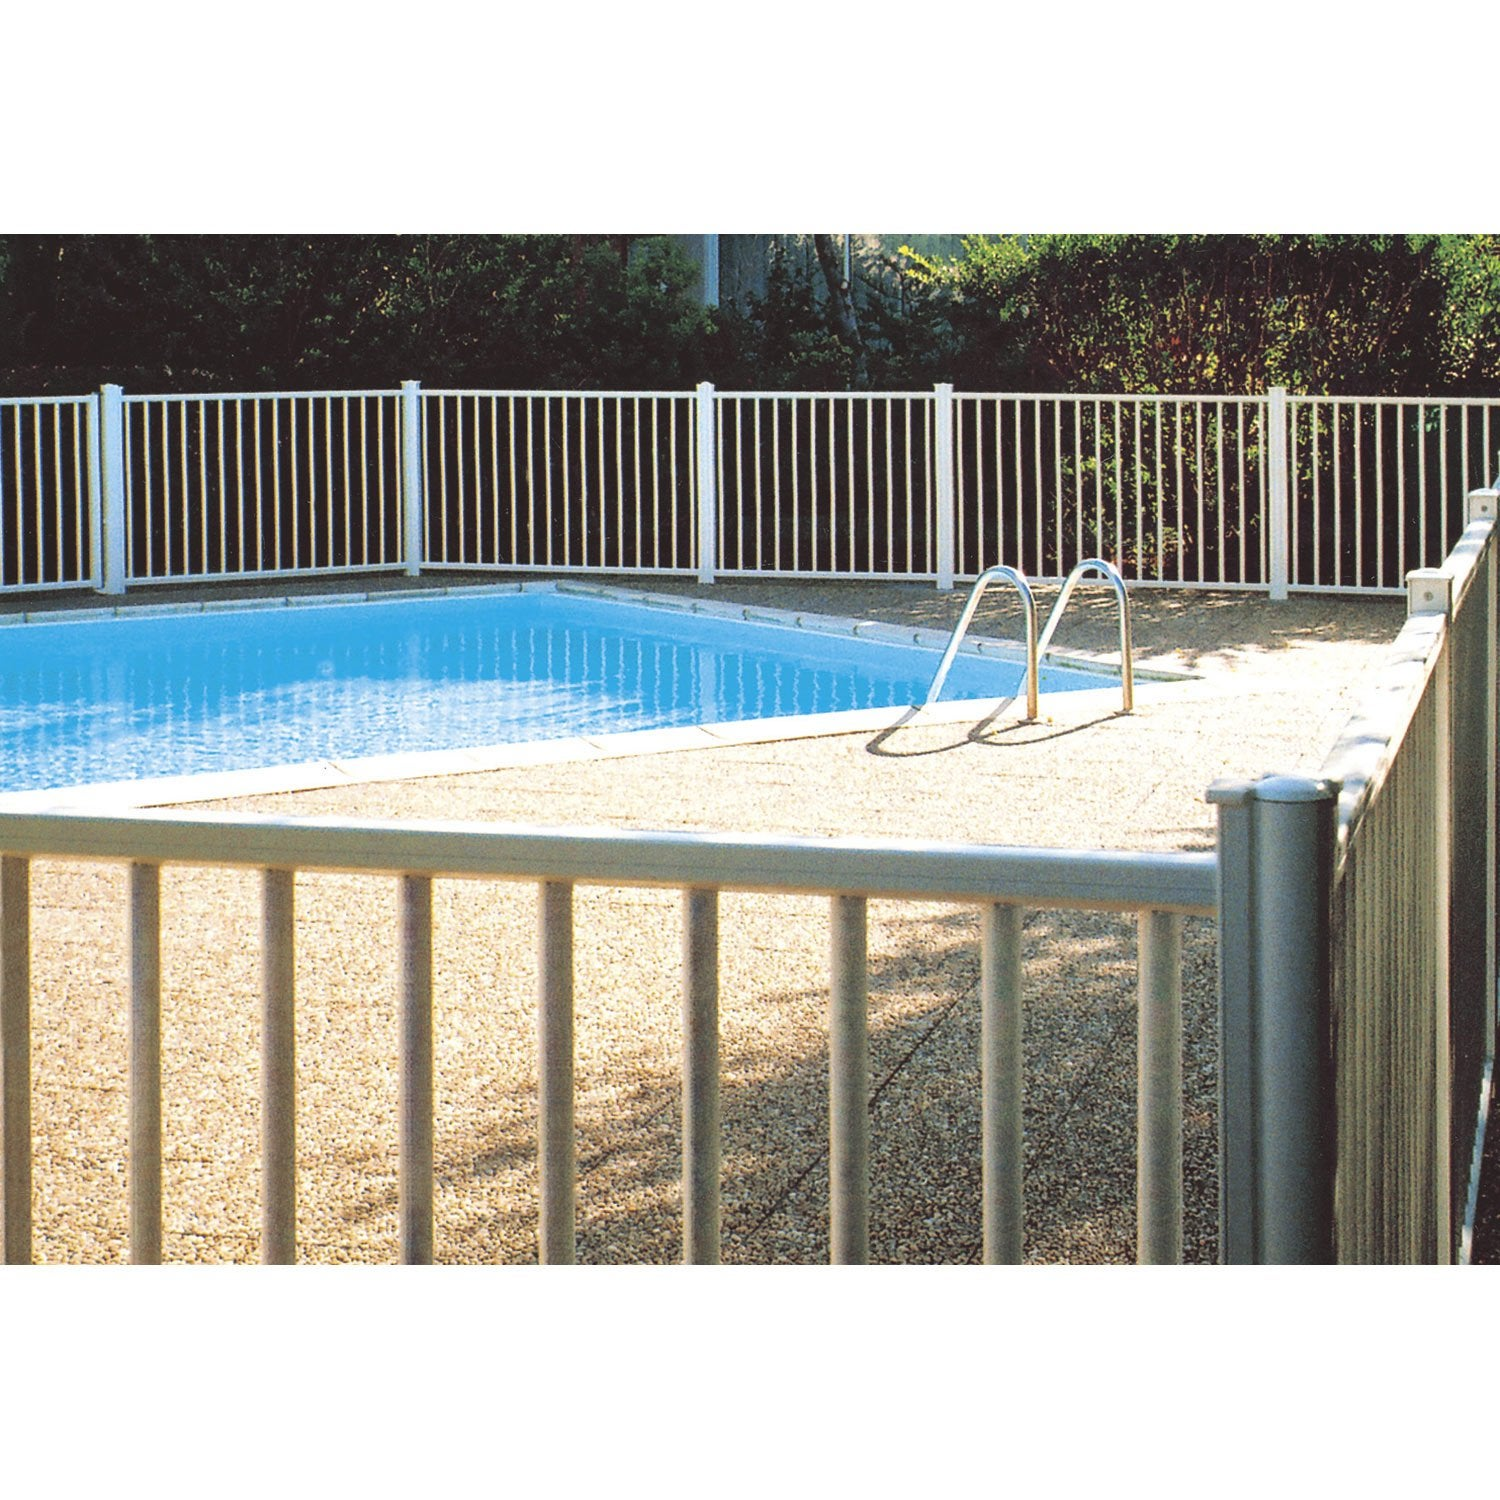 Barri re pour piscine aluminium issambres blanc 9010 h for Cloture de piscine